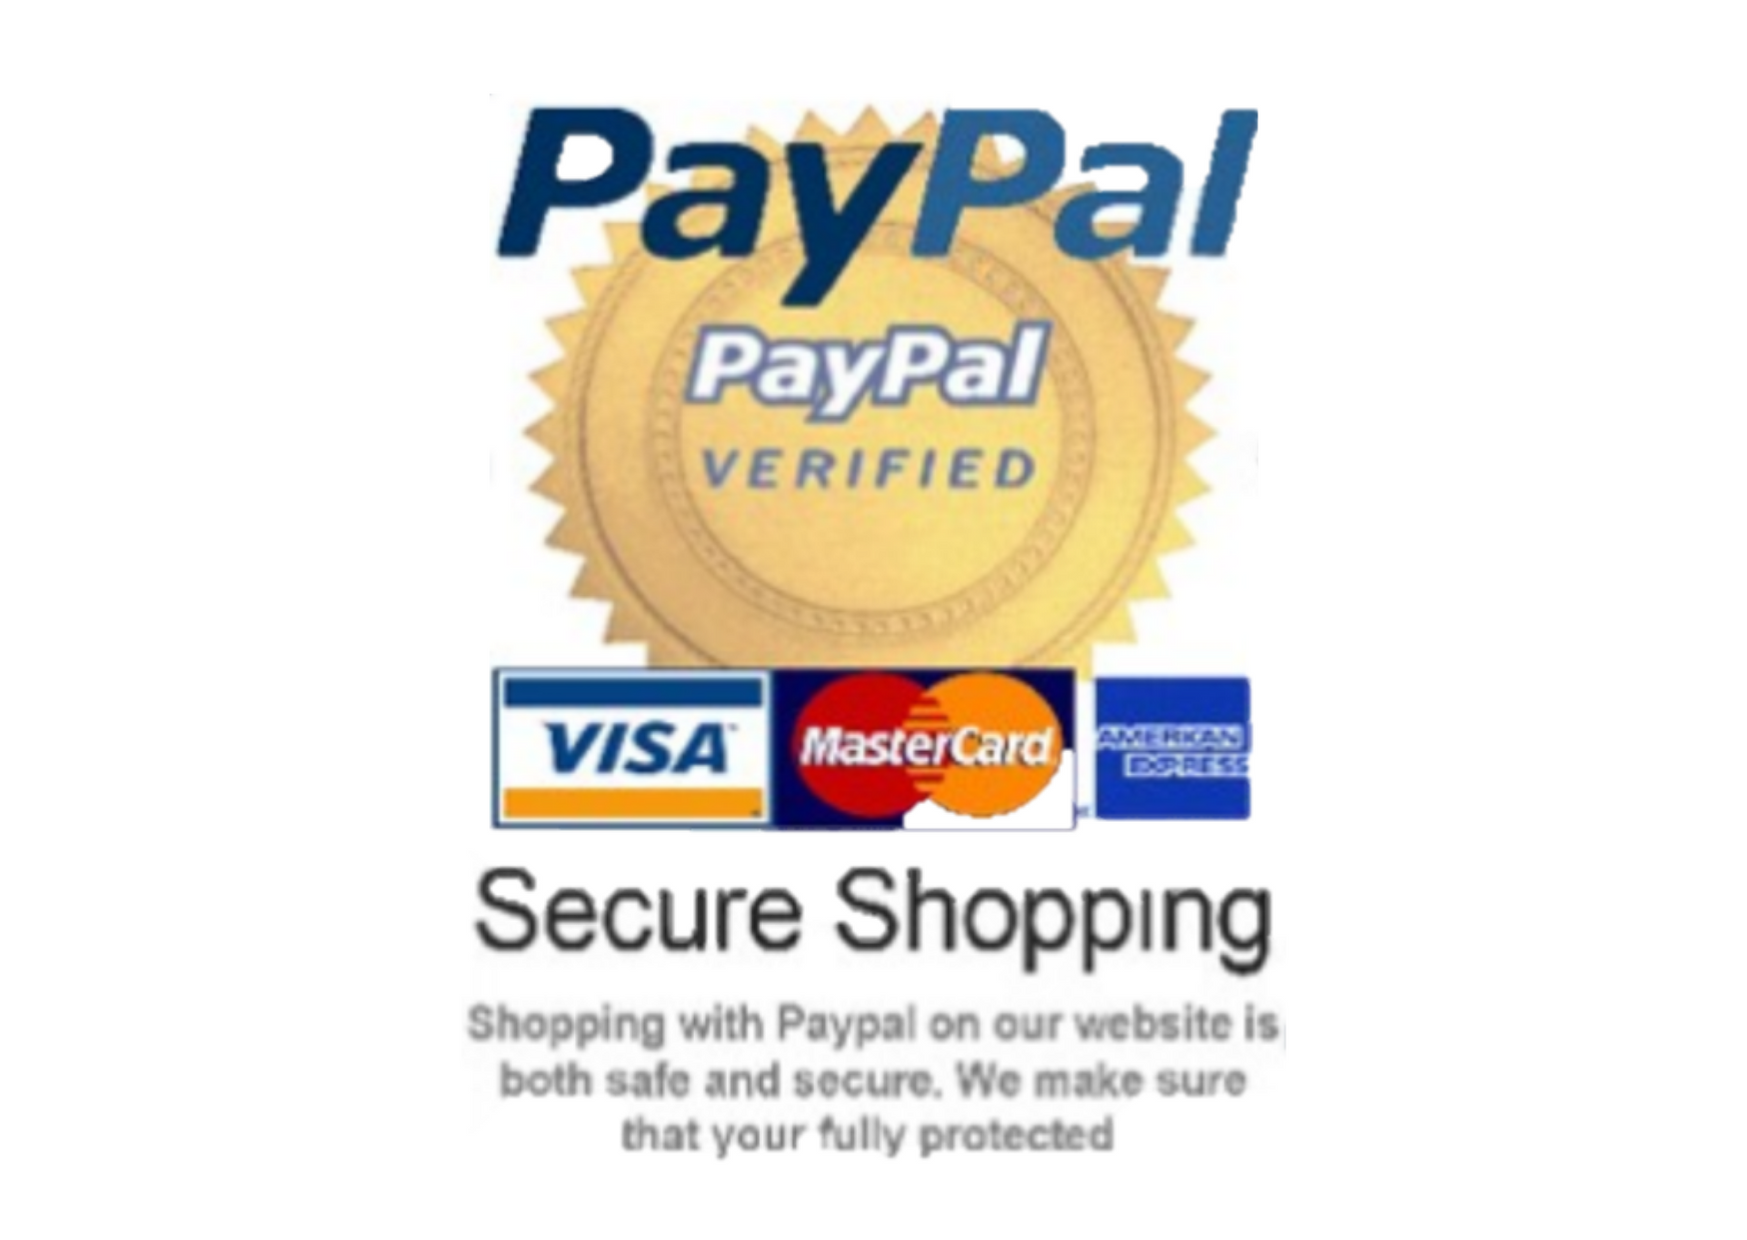 Paypal and Worldpay accepted at the checkout